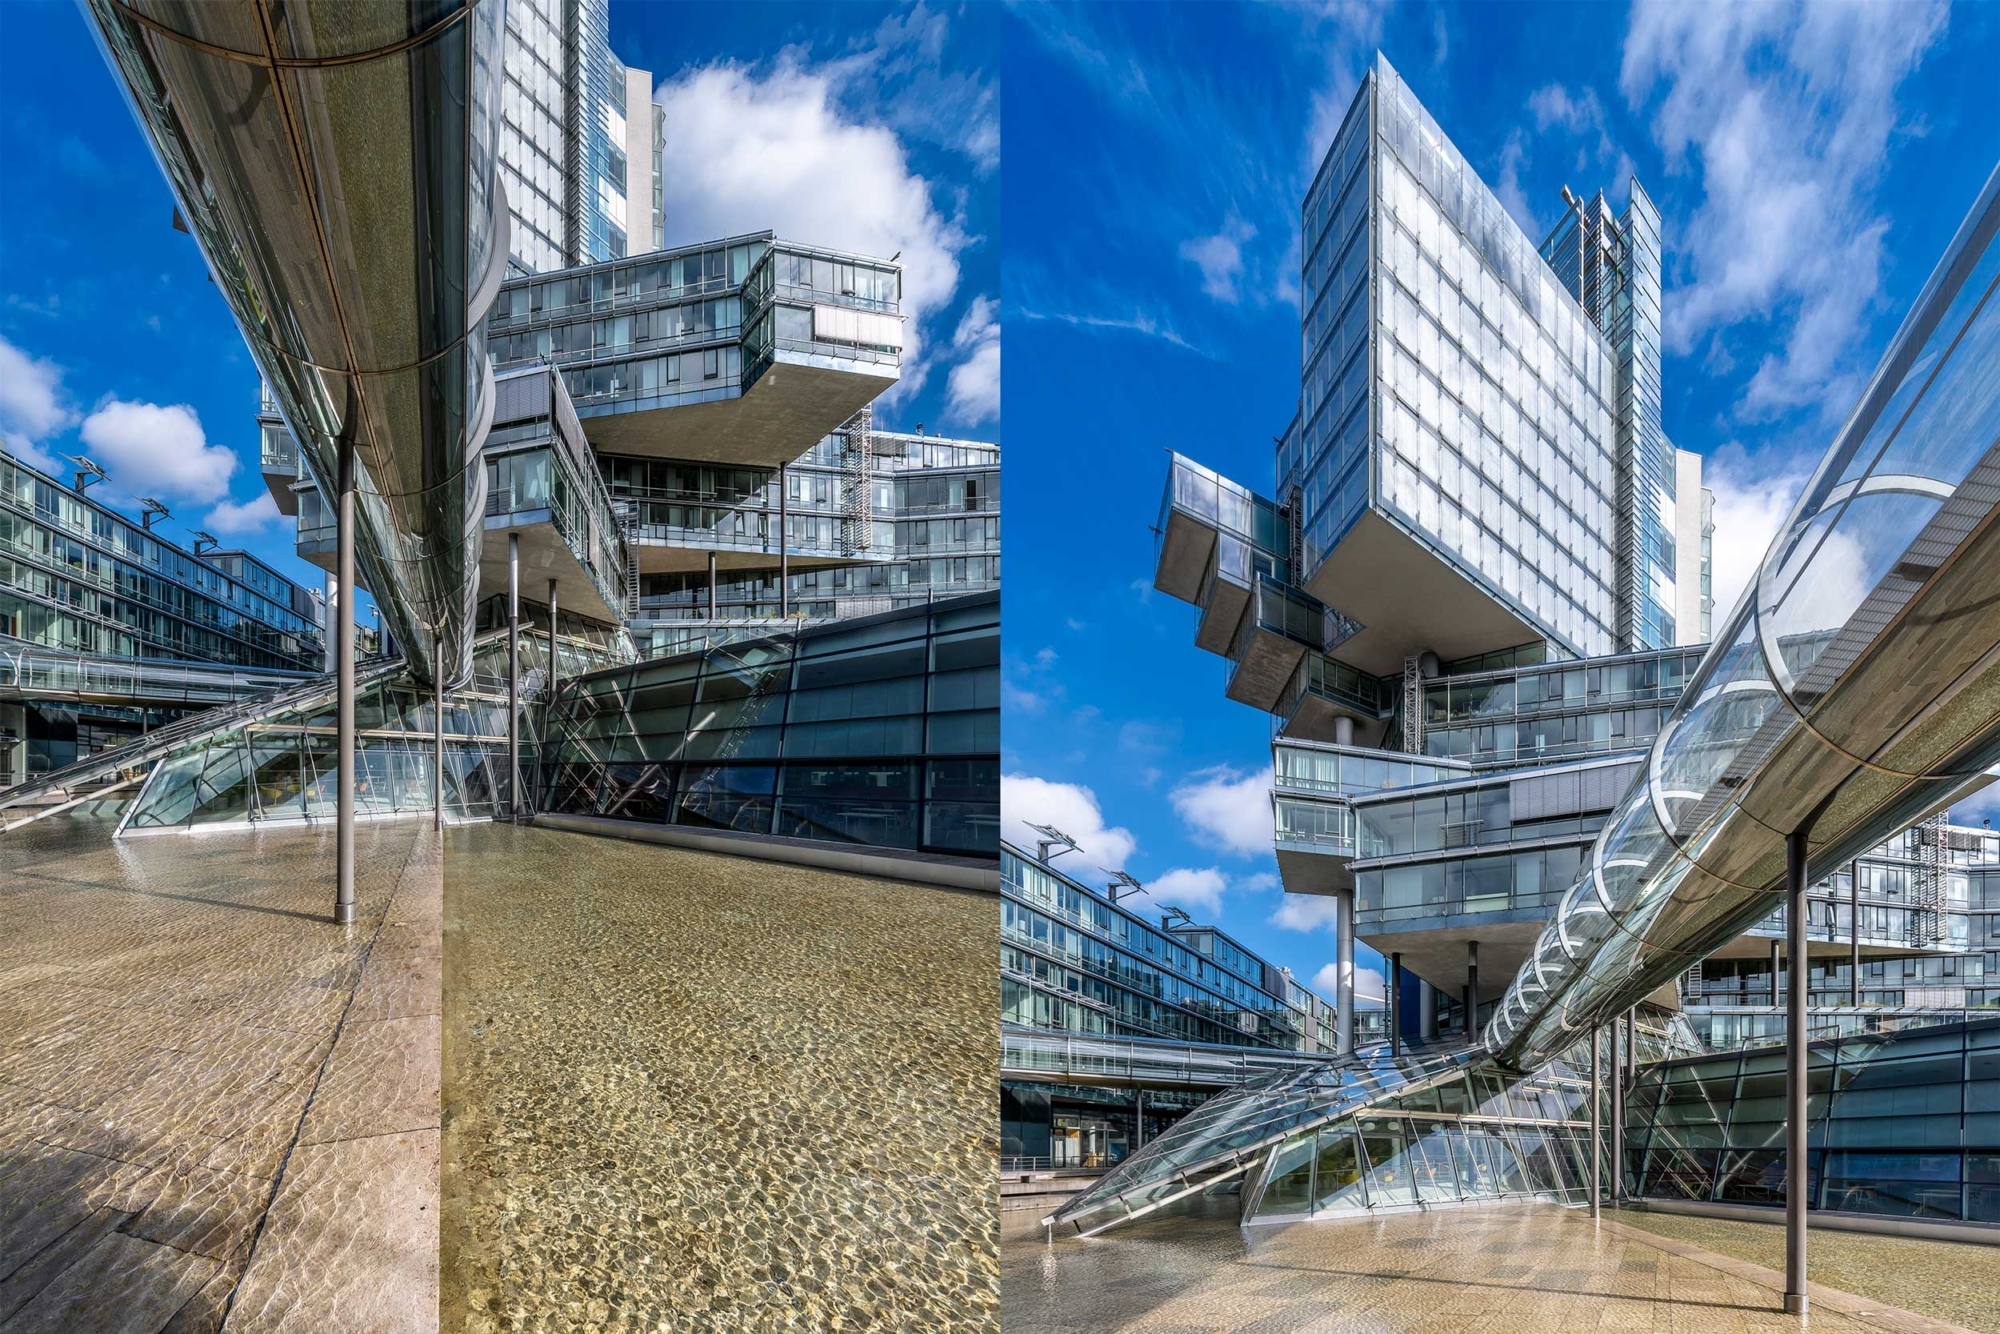 Deconstructivist building of the German Bank Nord:LB in Hannover, Germany 200929wc859772-3